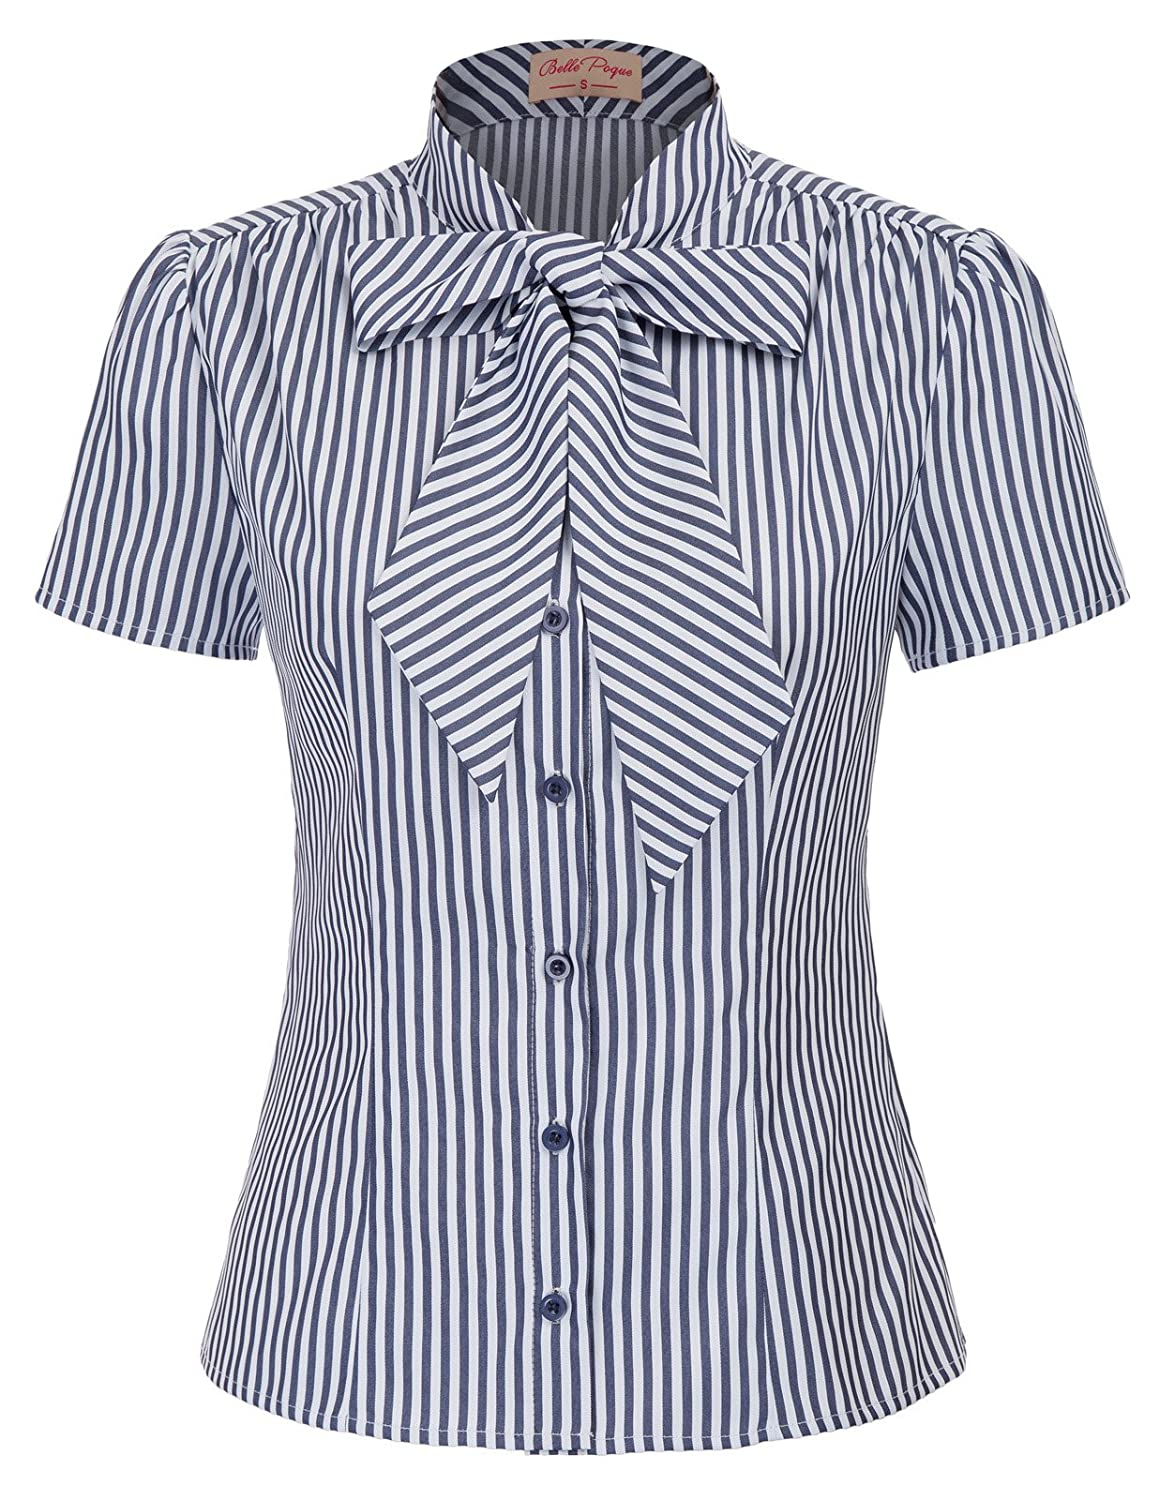 e0fe9d69b71952 Item Meterial: 50%Cotton+50%Polyester This button down blouse has a sweet  vintage bow tie stand collar with very pretty and flowy silhouette. This  shirt has ...